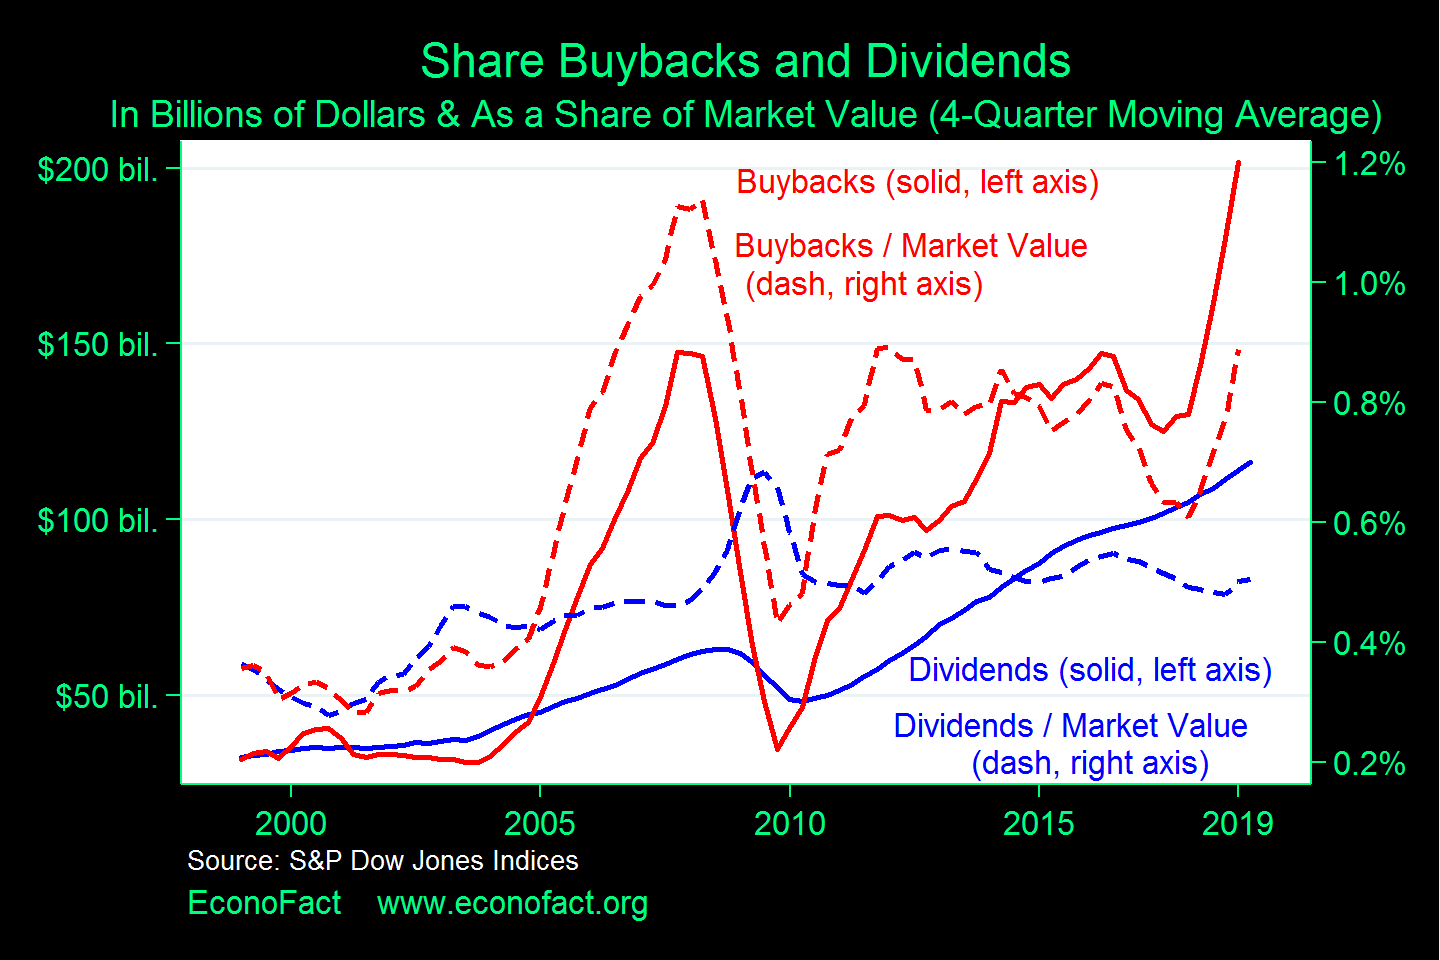 What Problems (If Any) Arise From Stock Buybacks? | Econofact